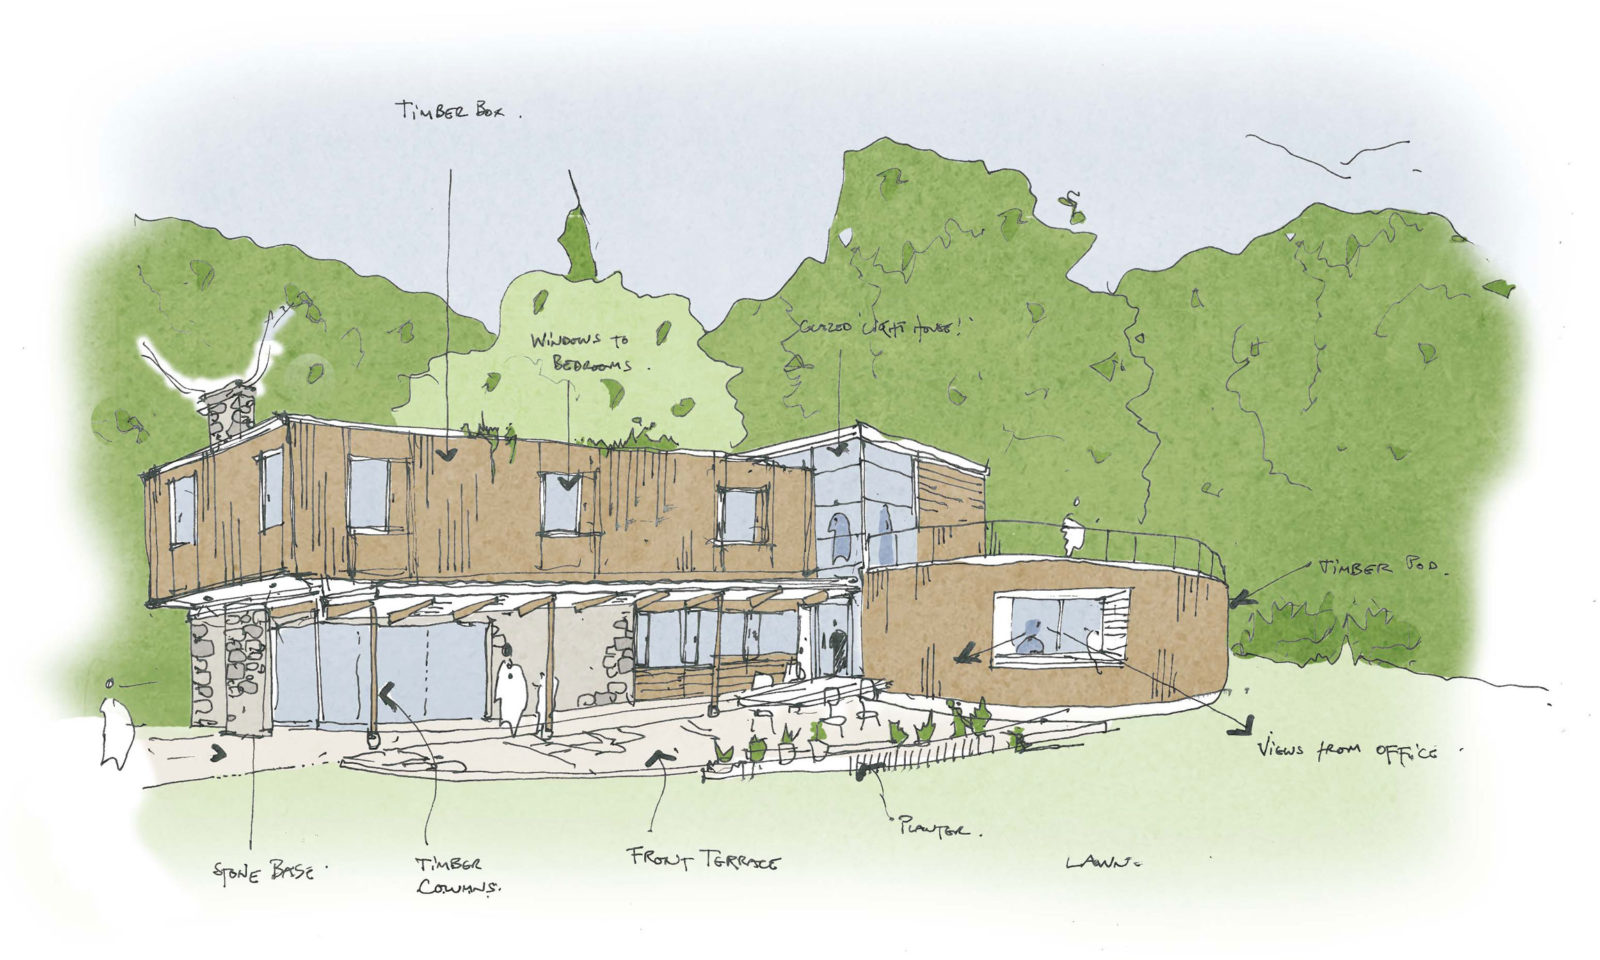 RSA awarded new-build house project in Belstone near Okehampton – Rud Sawers Architects, Devon